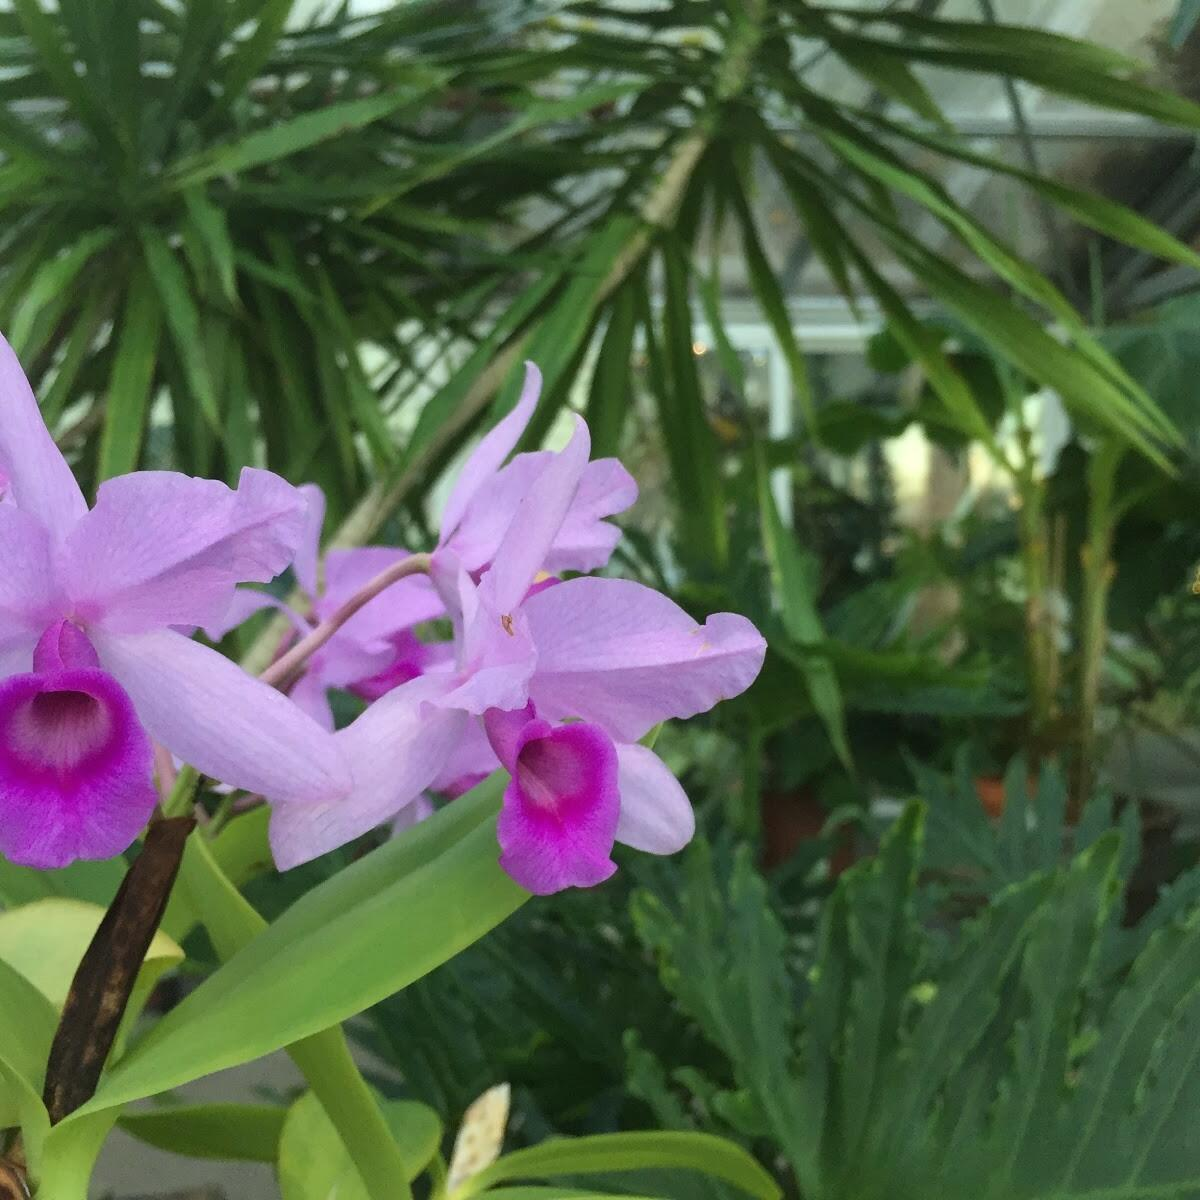 Cattleya Patinii a type of orchid in a Greenhouse at Alderbrook